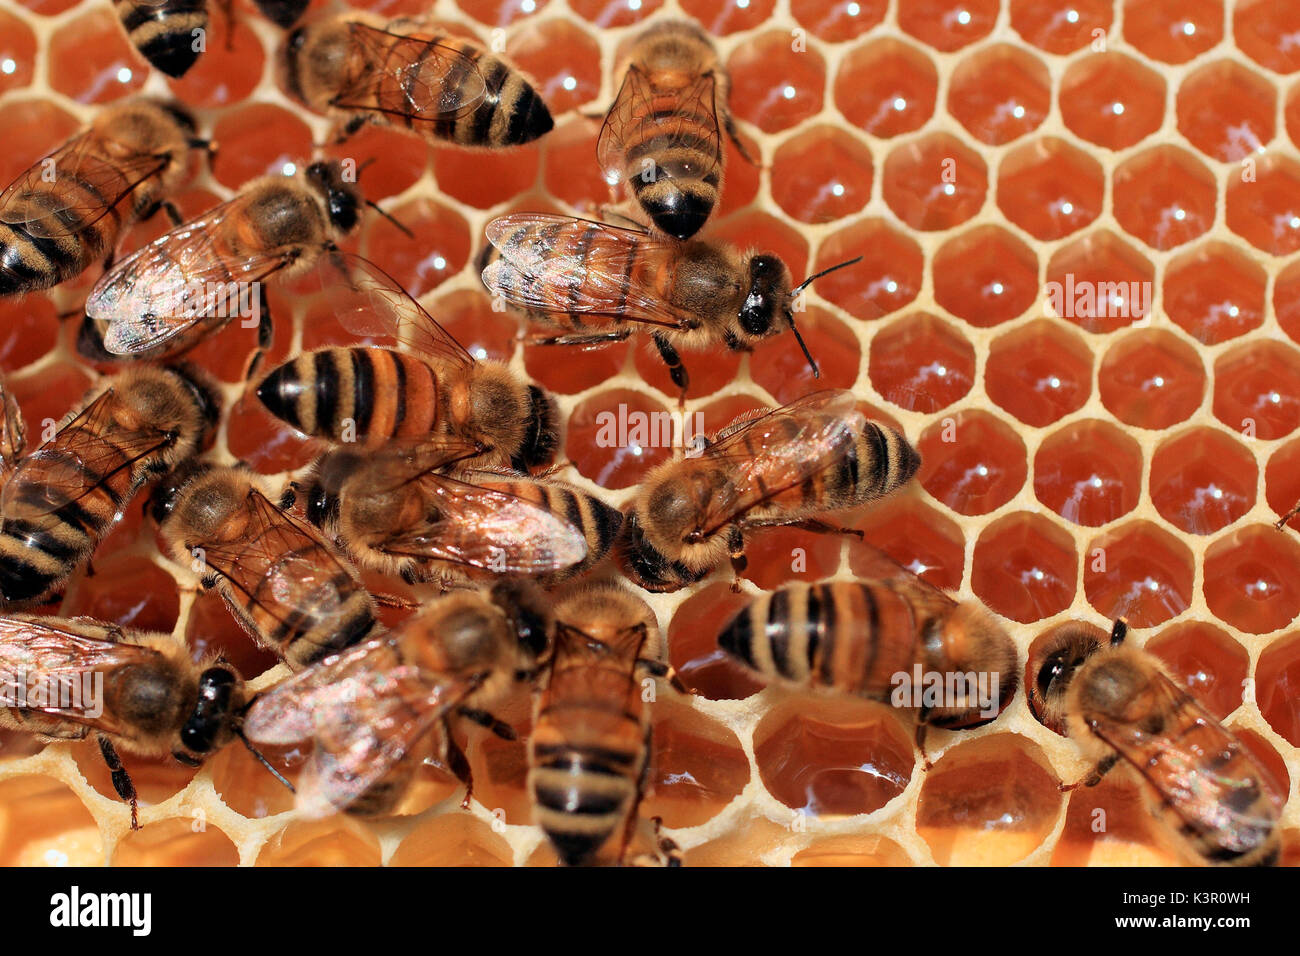 A honey bee colony typically consists of three kinds of adult bees: workers, drones, and a queen. Several thousand worker bees cooperate in nest building, food collection, and brood rearing. Valtellina Lombardy Italy Europe - Stock Image